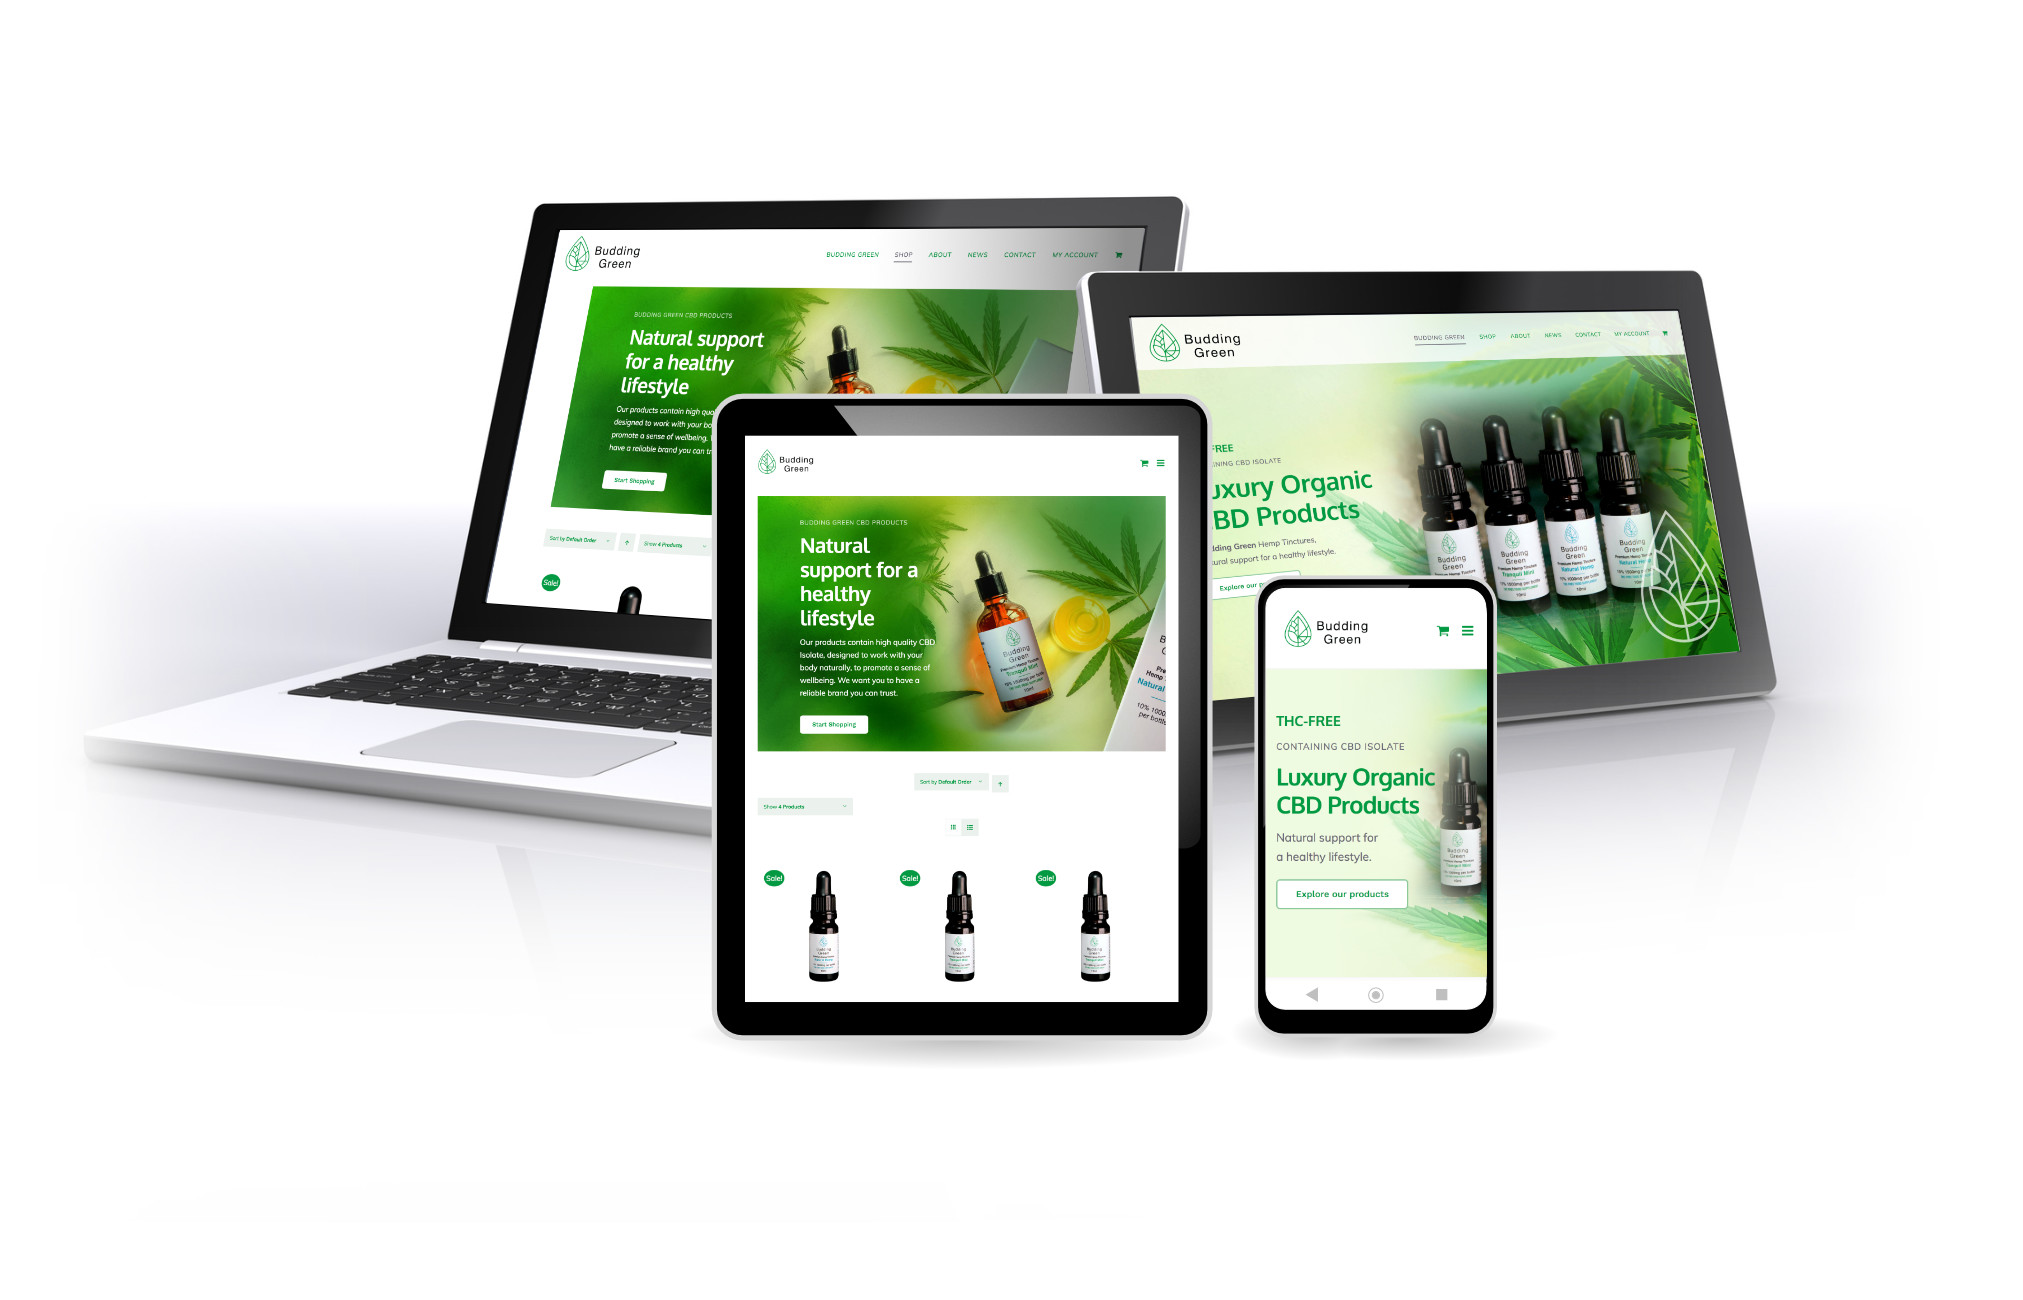 CBD Products, Budding Green Shop, eCommerce, web design by Orangebox Digital, 2020